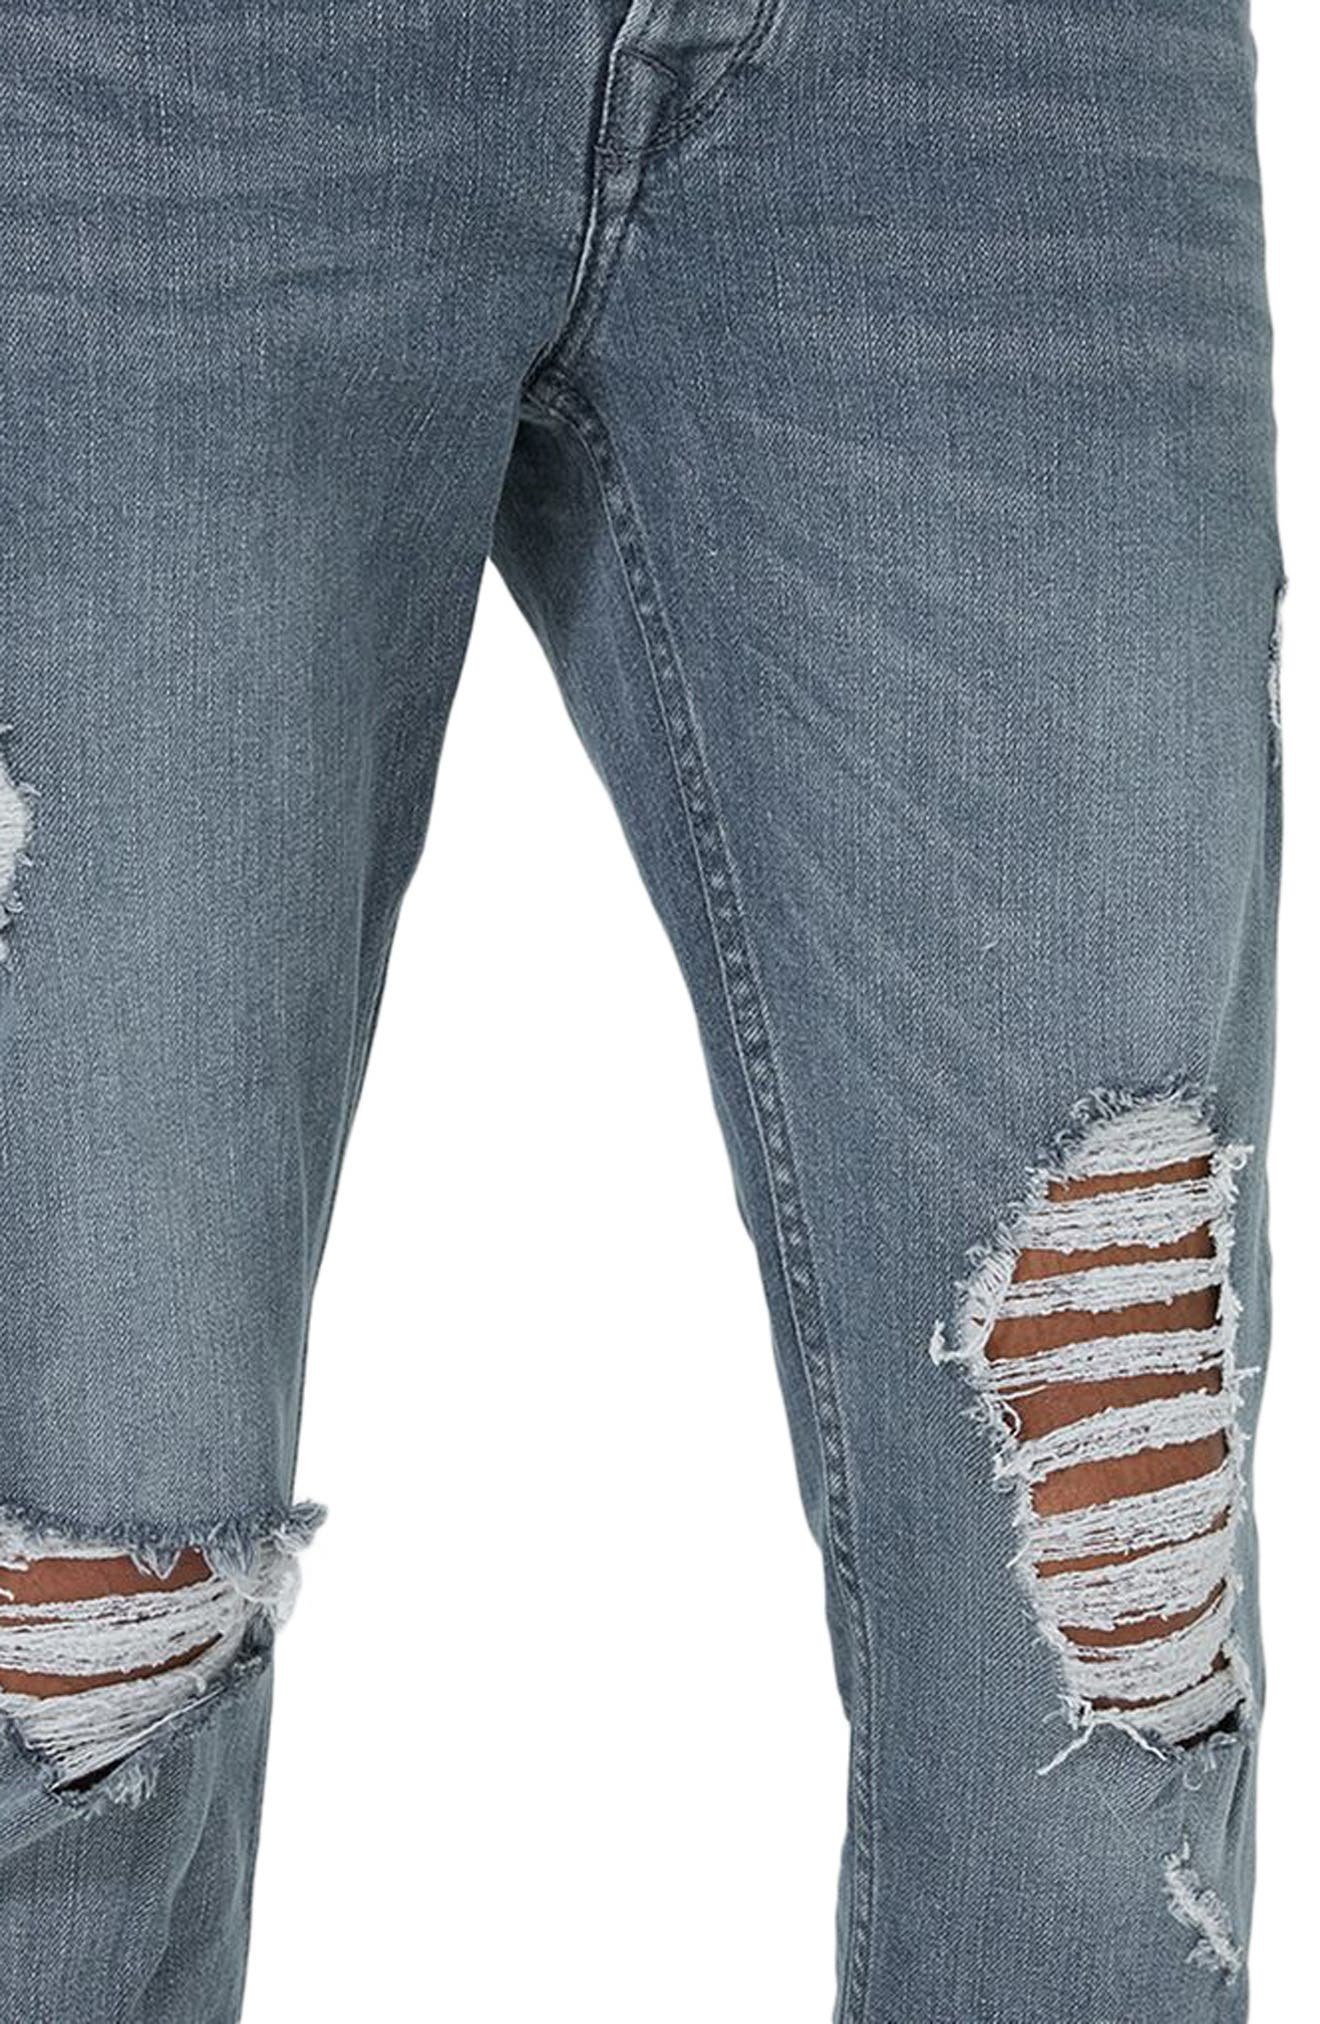 Alternate Image 3  - Topman Extreme Rip Stretch Jeans